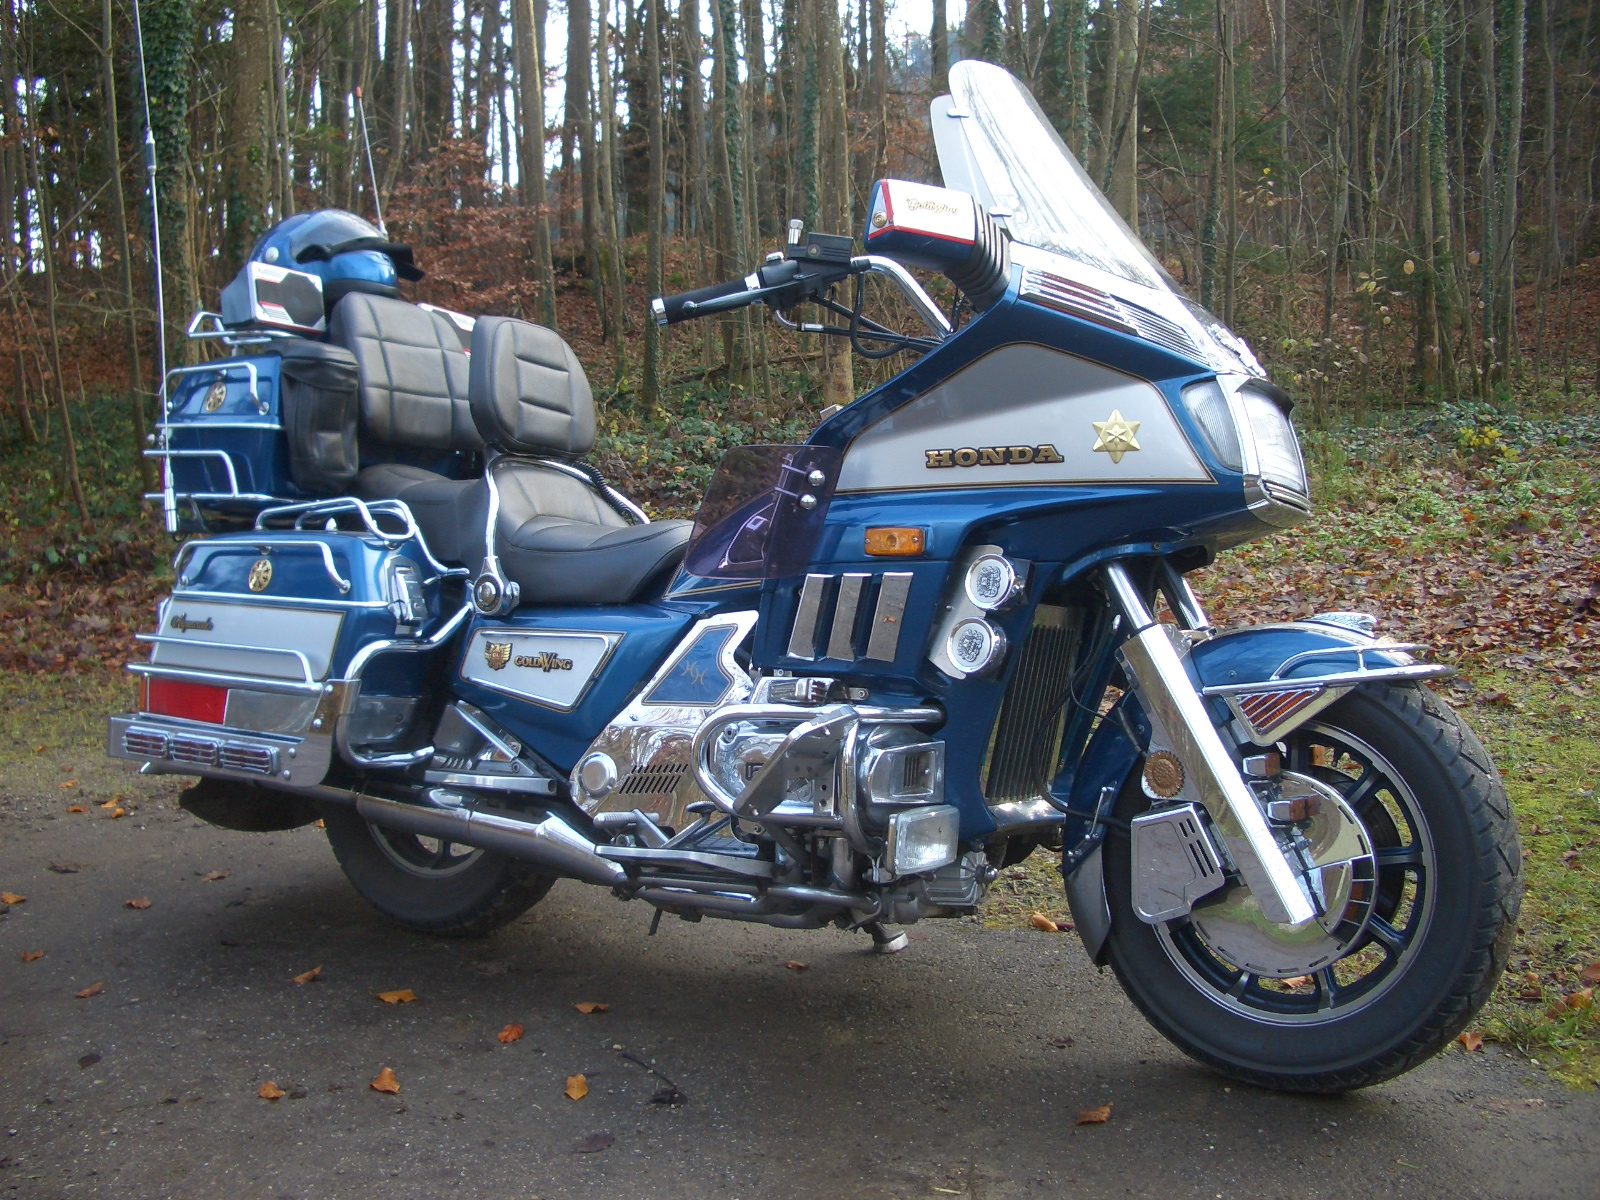 Honda GL 1100 Gold Wing 1982 images #81227